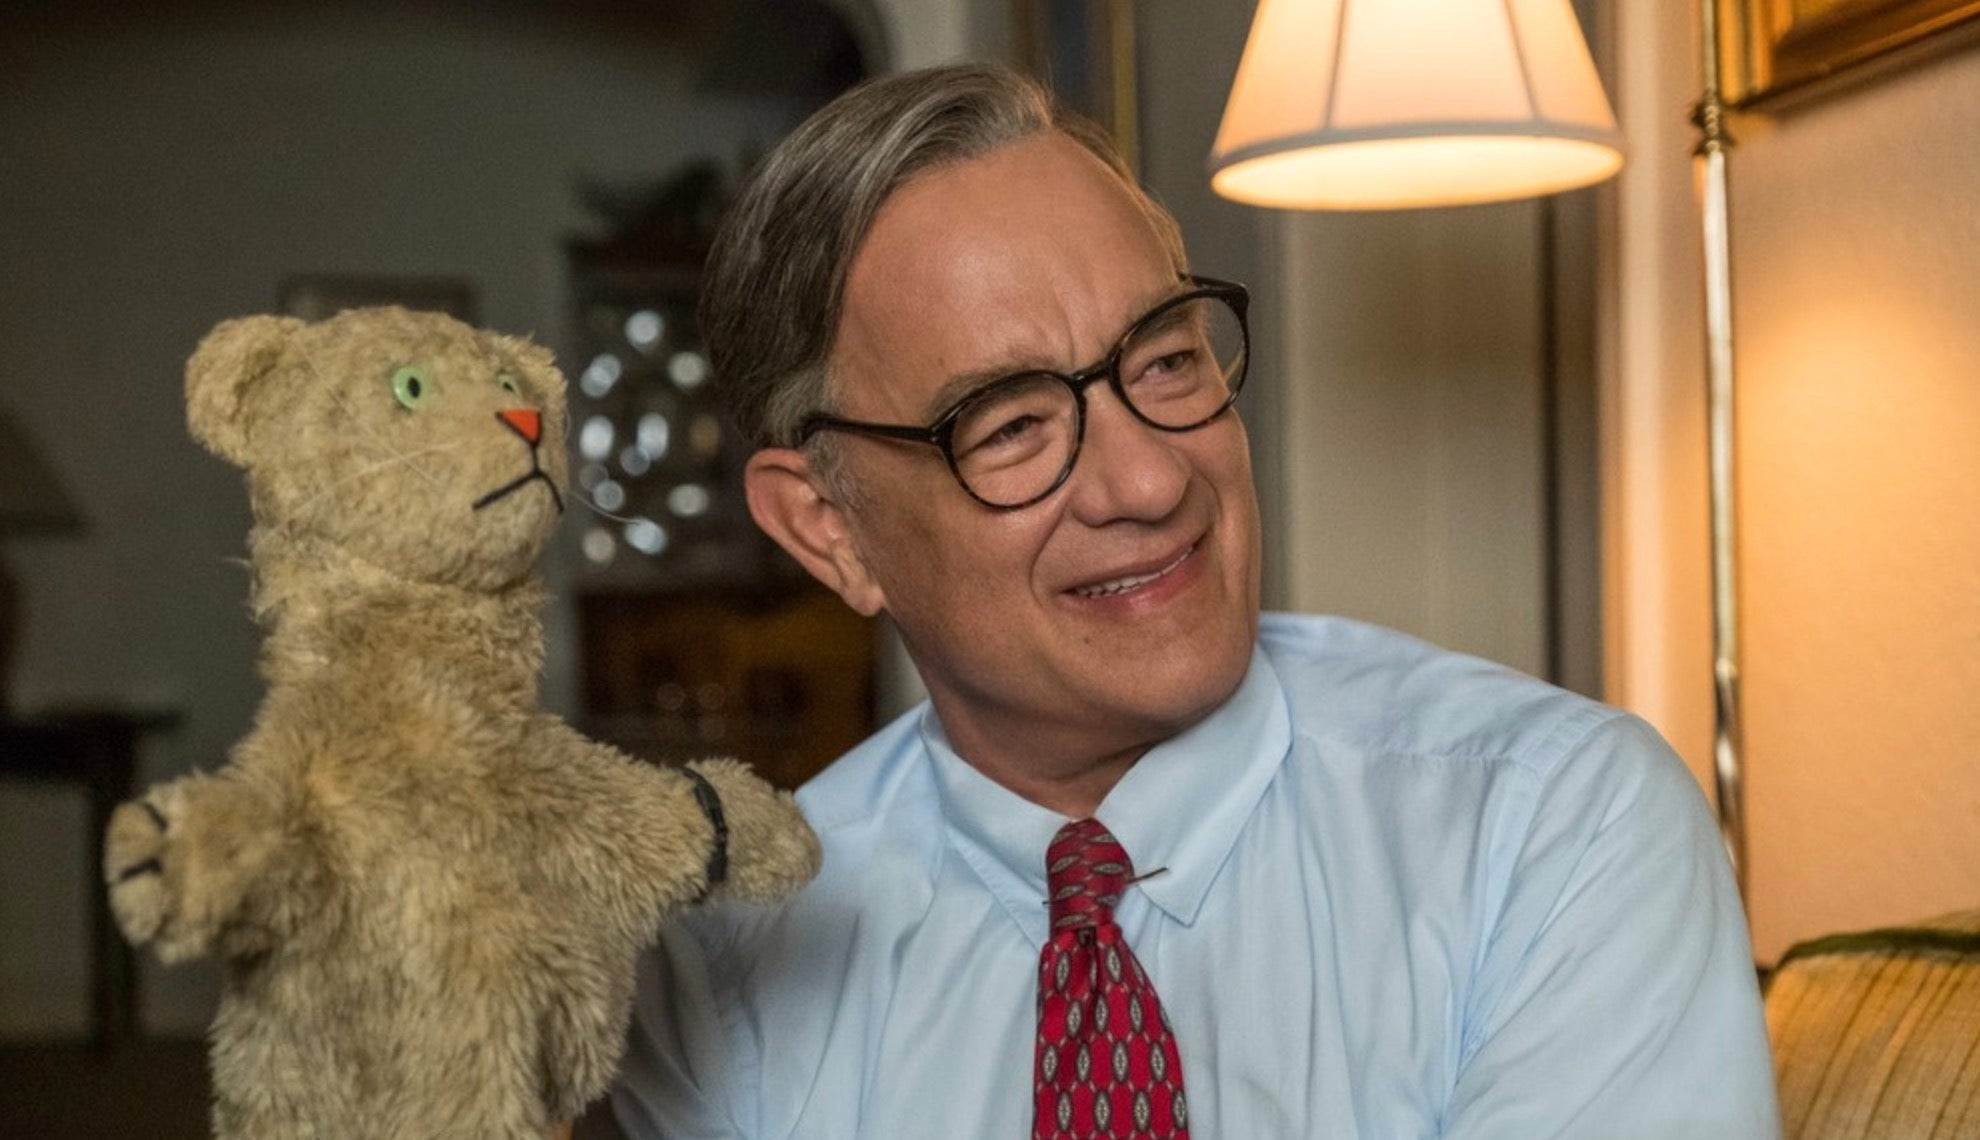 Reminder: The Tom Hanks Mr. Rogers Movie Is Coming Soon To Bring Joy To Our Lives